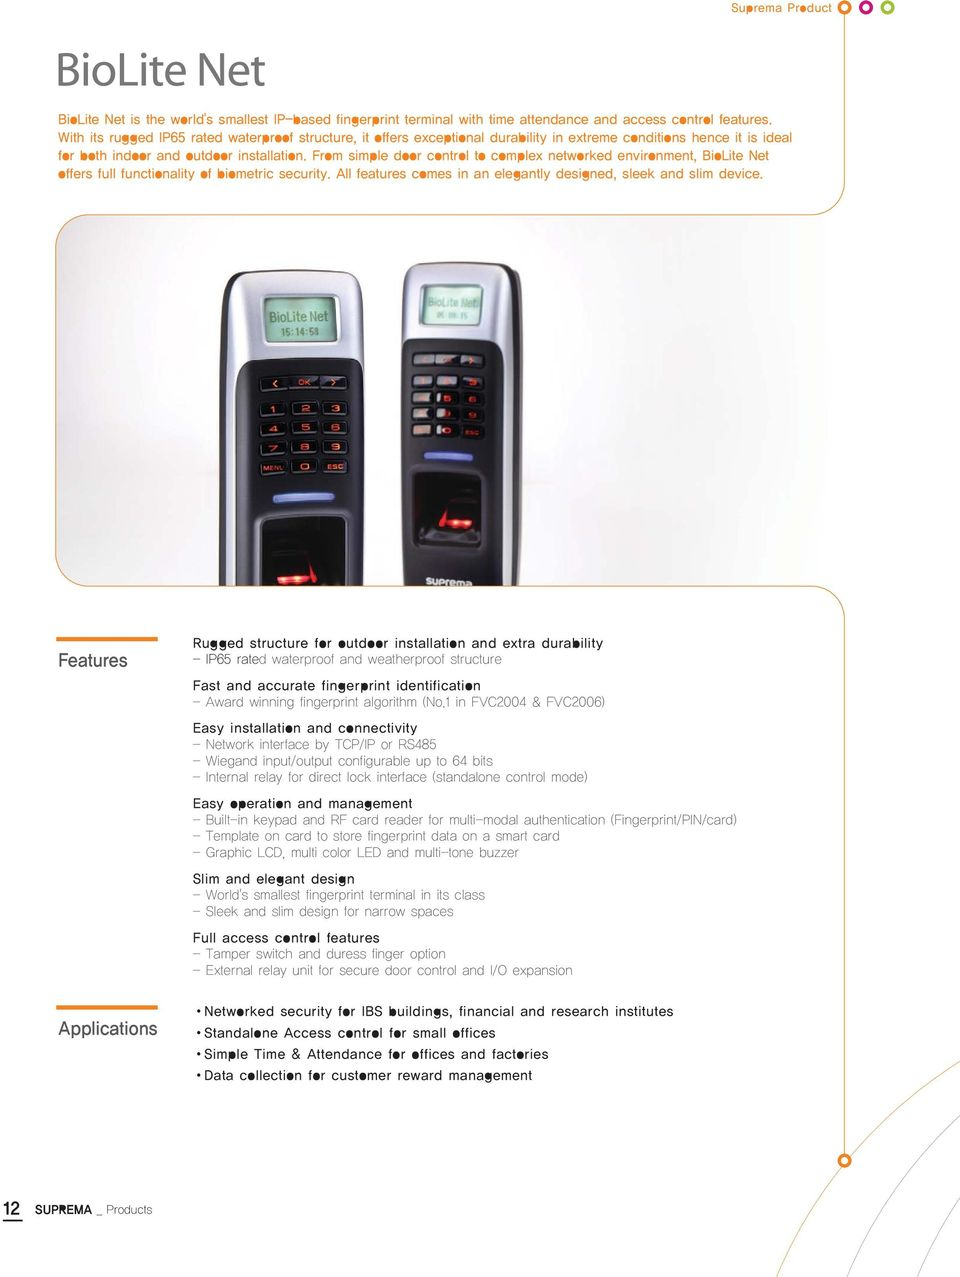 With Suprema The Technology Becomes Your Success Pdf Biolite Wiring Diagram From Simple Door Control To Complex Networked Environment Net Offers Full Functionality Of Biometric